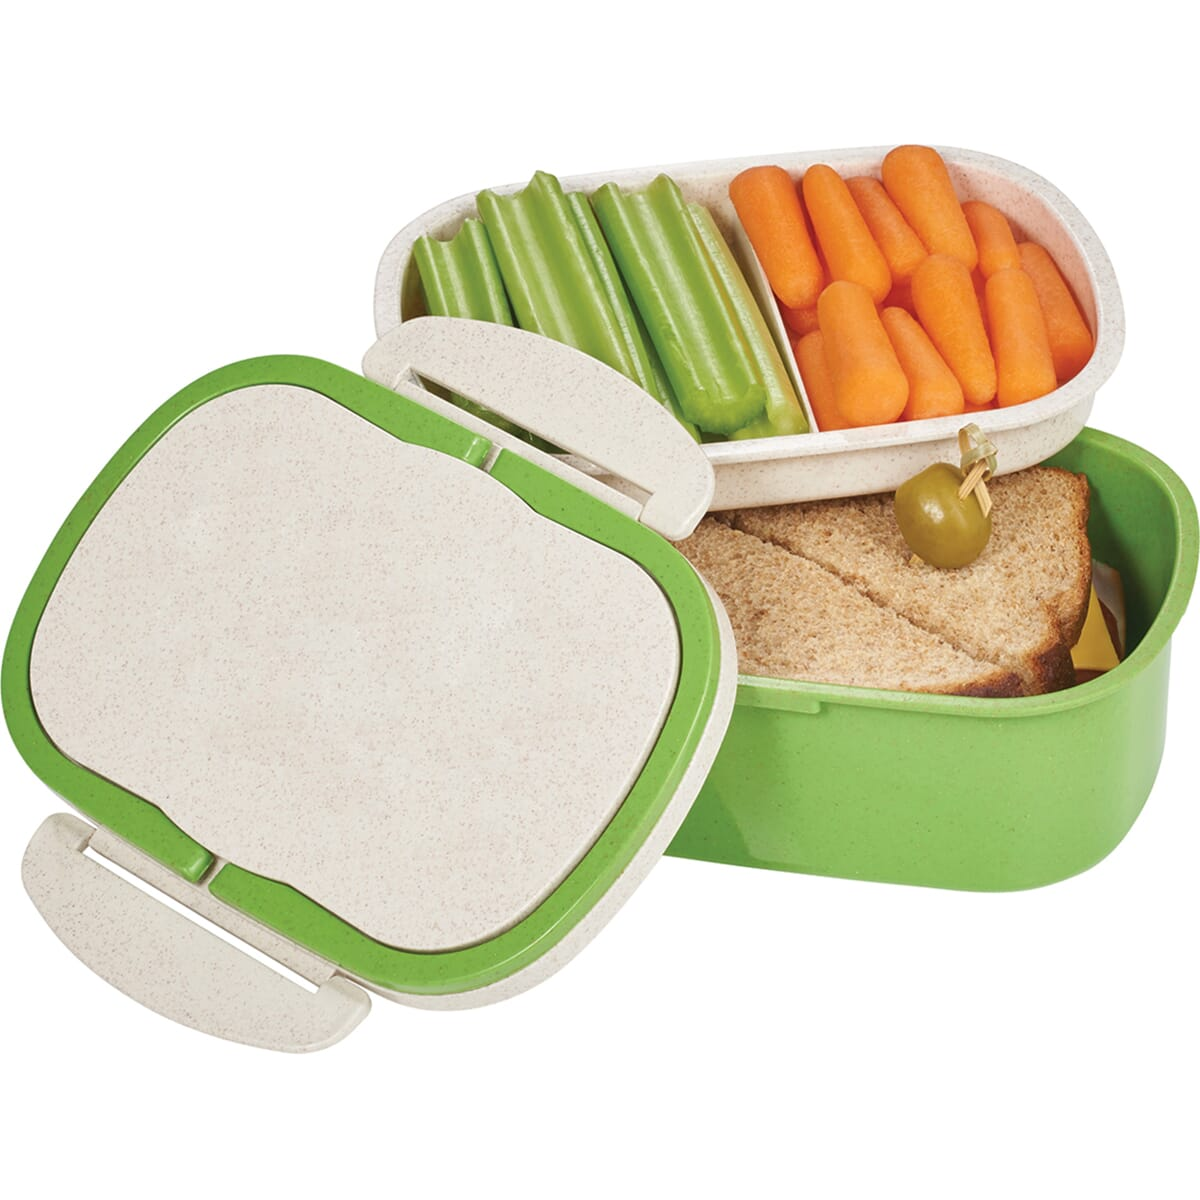 lunch container made of eco friendly wheat material